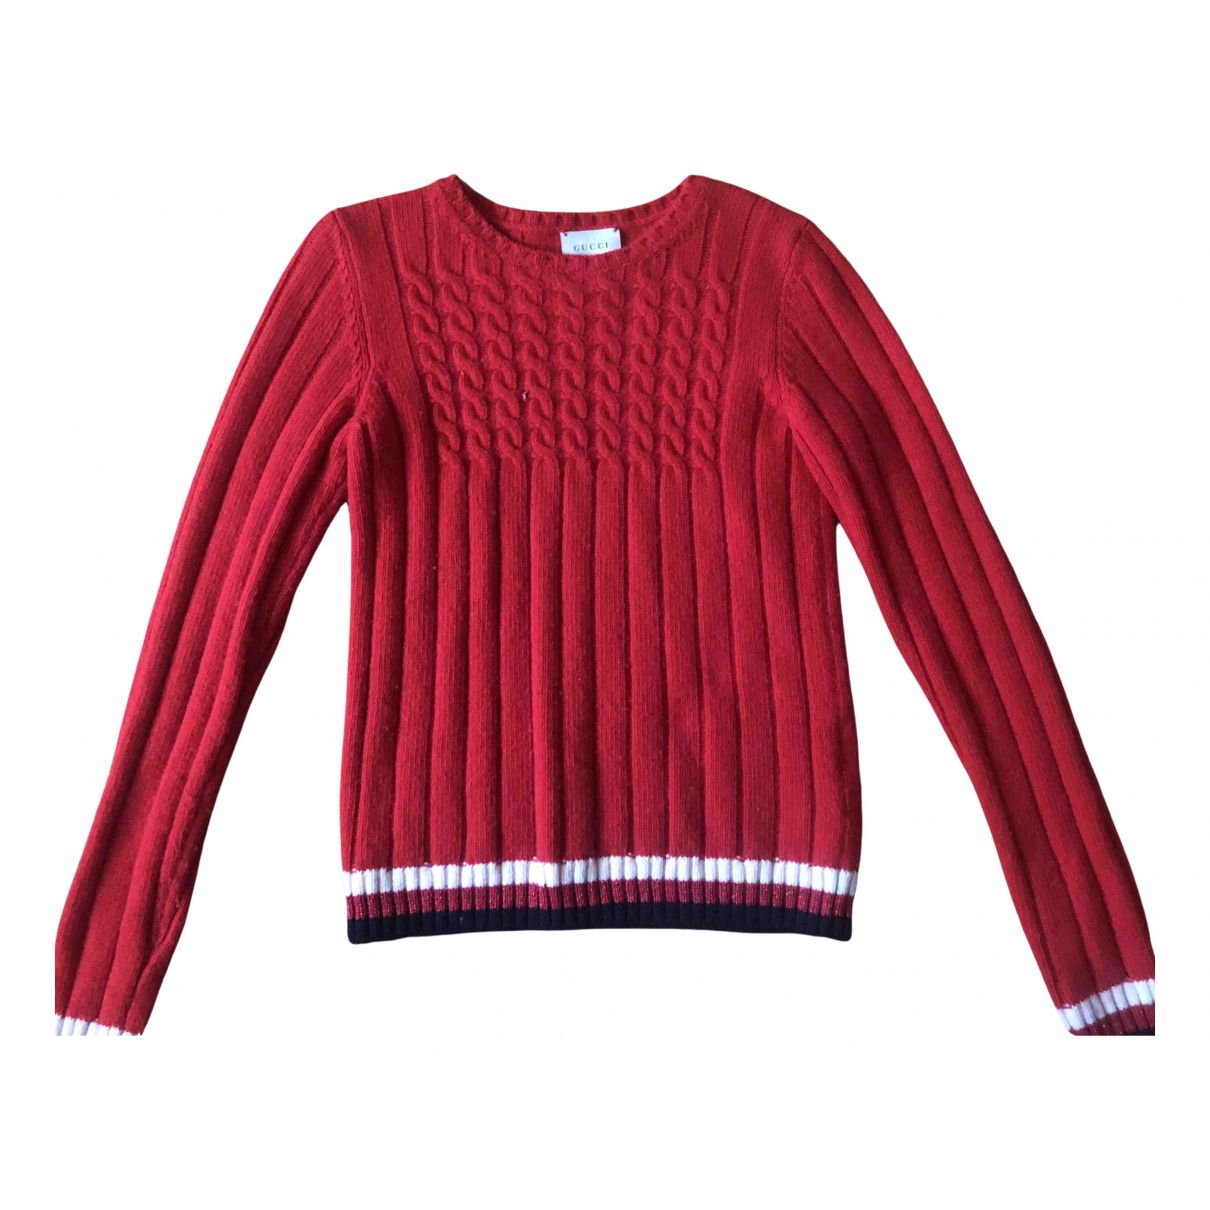 Gucci N Red Wool Knitwear for Kids 10 years - up to 142cm FR